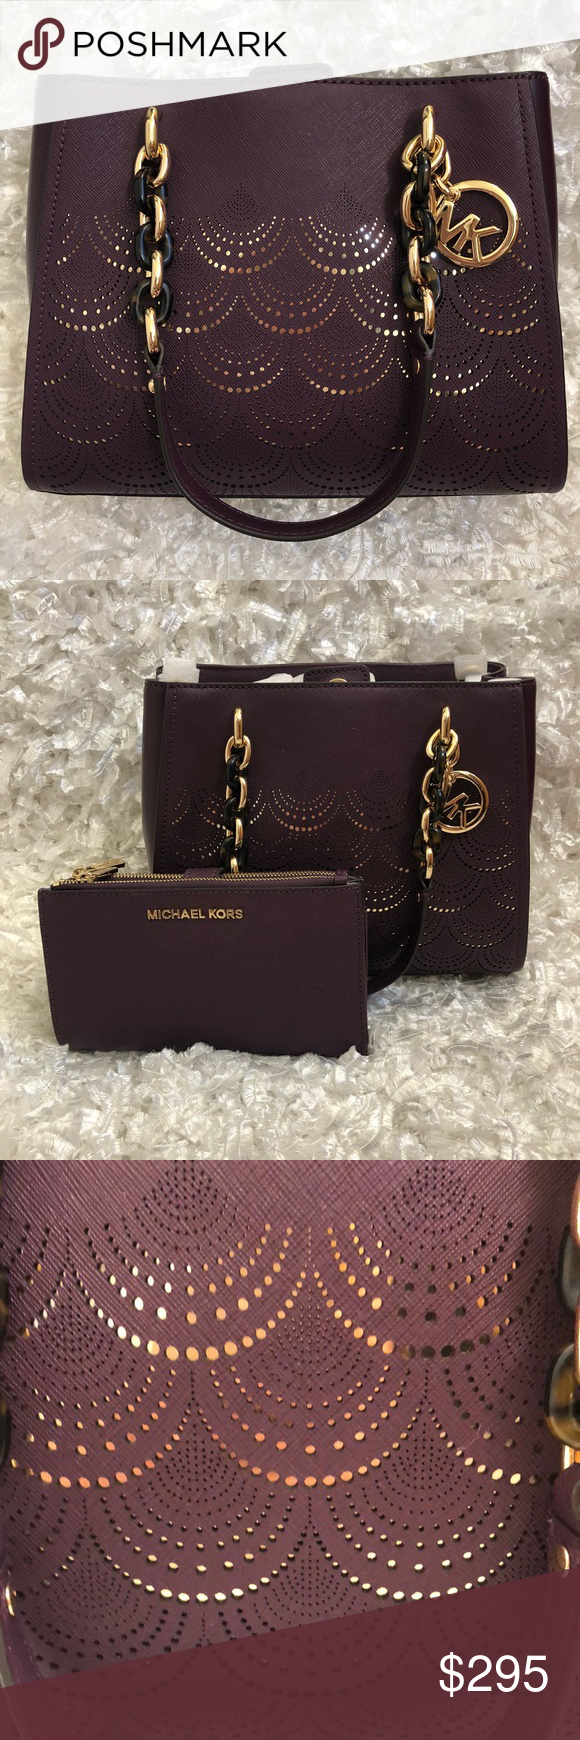 b879c49dbba7 MICHAEL KORS Sofia MD NS Tote   Jet Set Wristlet Sofia Md Ns Chain  Perforated Handbag Damson Saffiano Leather Tote Color  Damson (Plum) Snap  top closure ...